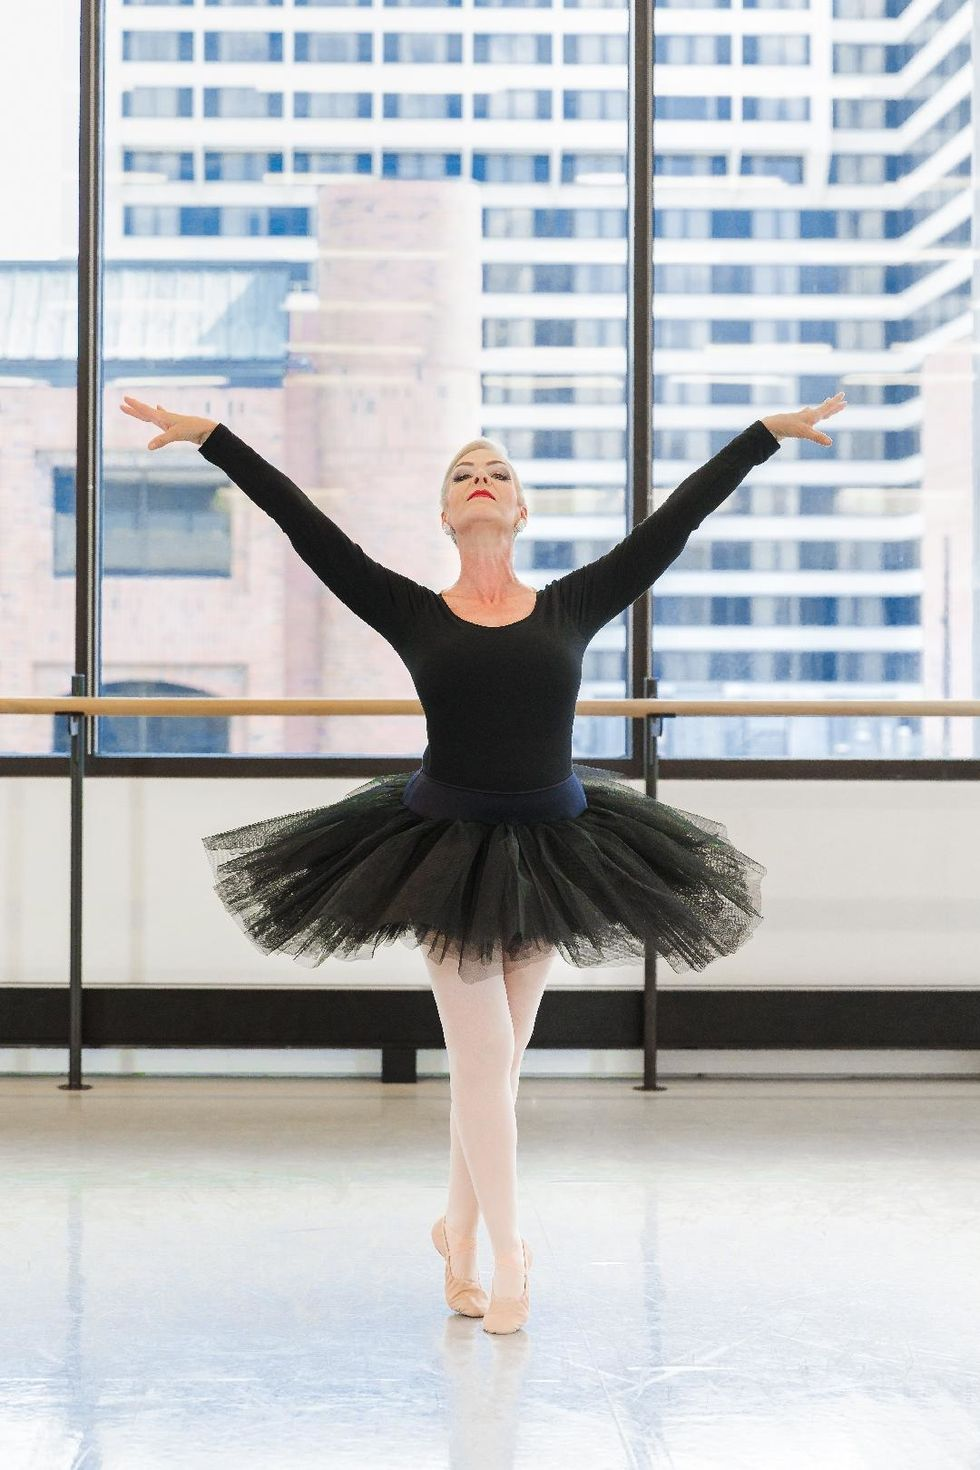 A middle aged woman in a long-sleeved black leotard, black tutu, pink tights and ballet slipper, poses dramatically in sus-sous, her arms in a V shape.